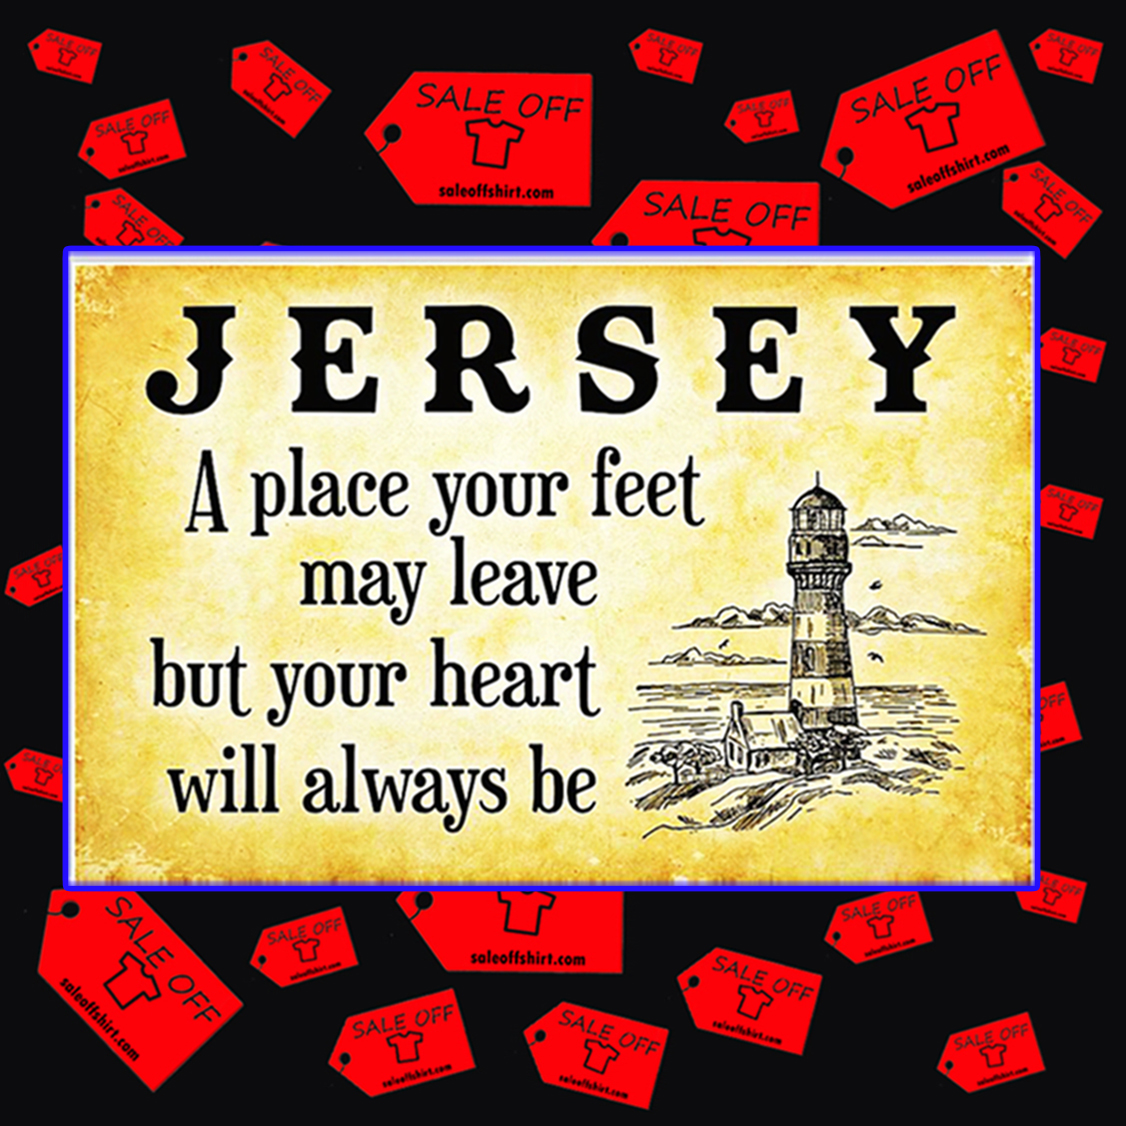 Jersey a place your feet may leave but your heart will always be poster 24x16